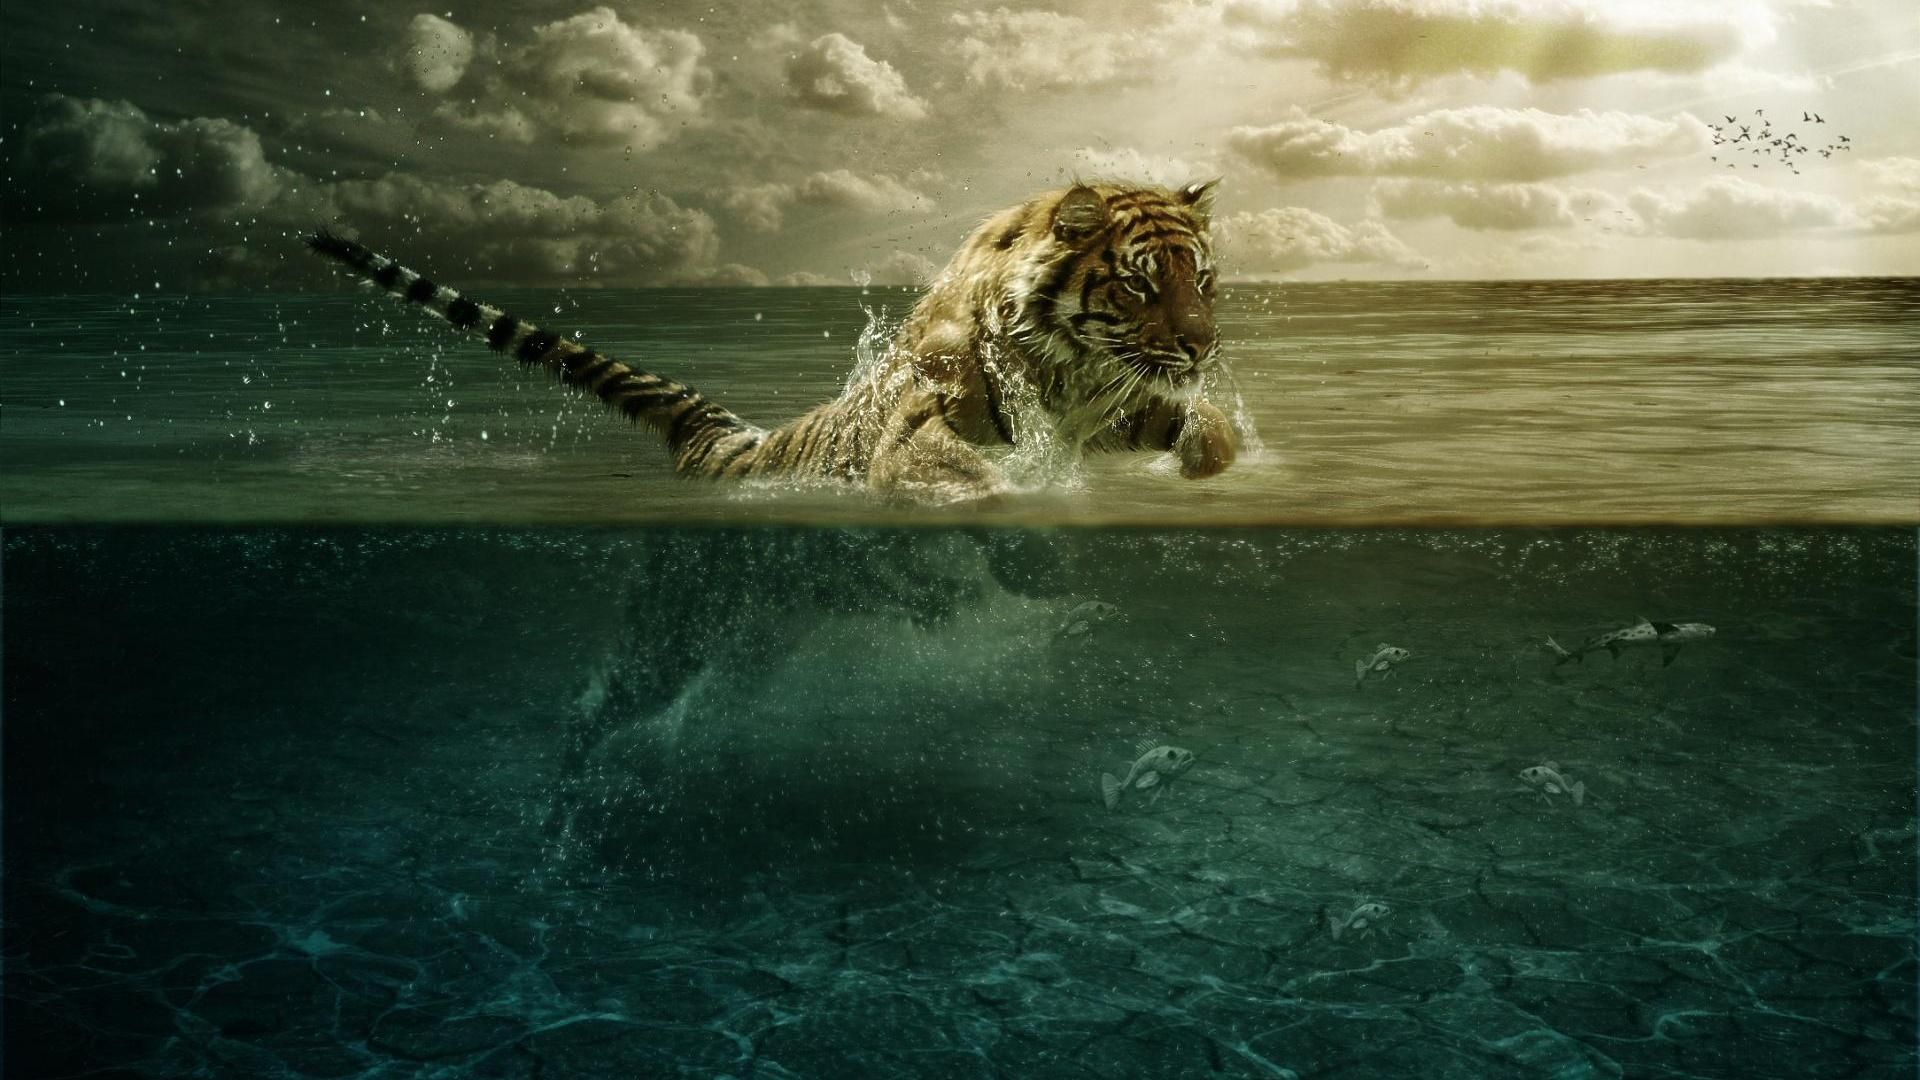 Pin by IM on Notes Tiger wallpaper Tiger pictures Animal wallpaper 1920x1080